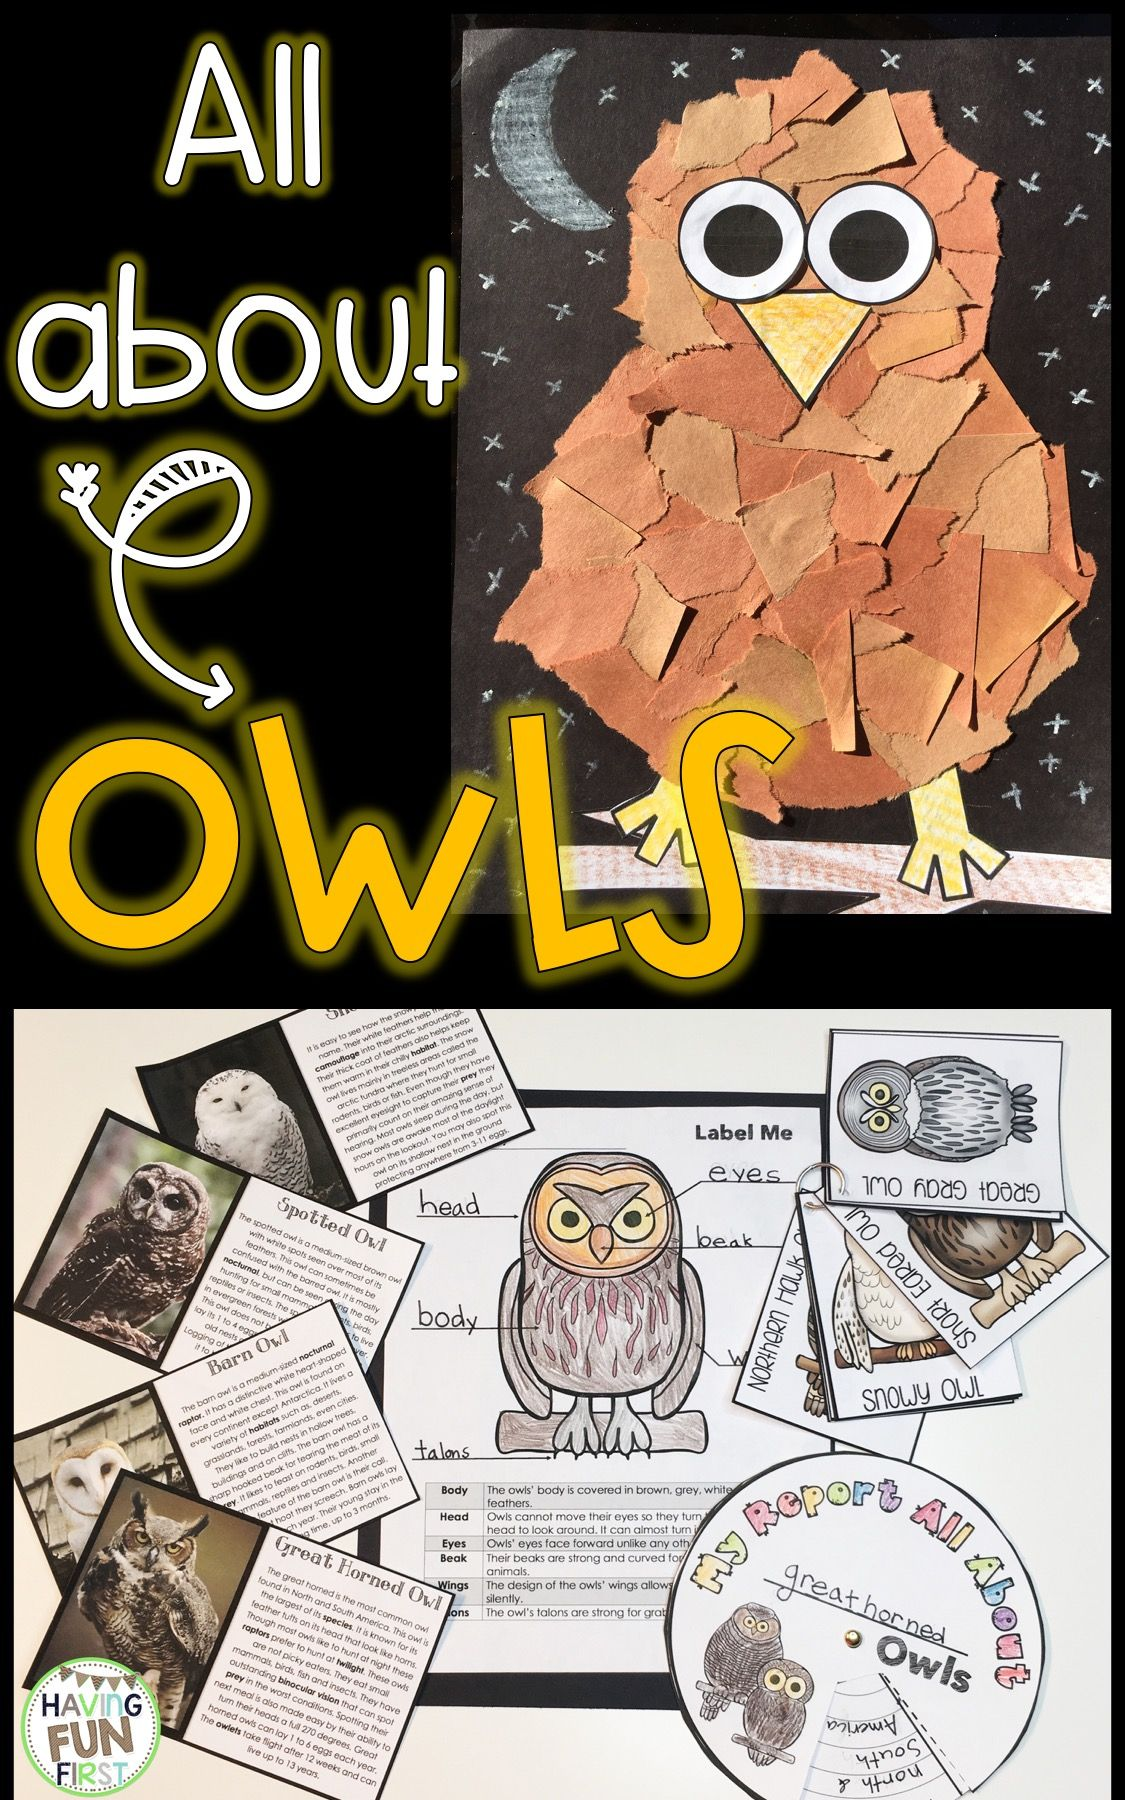 Learn all about owls through non-fiction passages with comprehension, writing, literacy and math centers, as well as a fun owl craft! Multiple subject areas covered help make this owl unit easy to implement. Just print and have fun as your students learn all about this nocturnal animal.